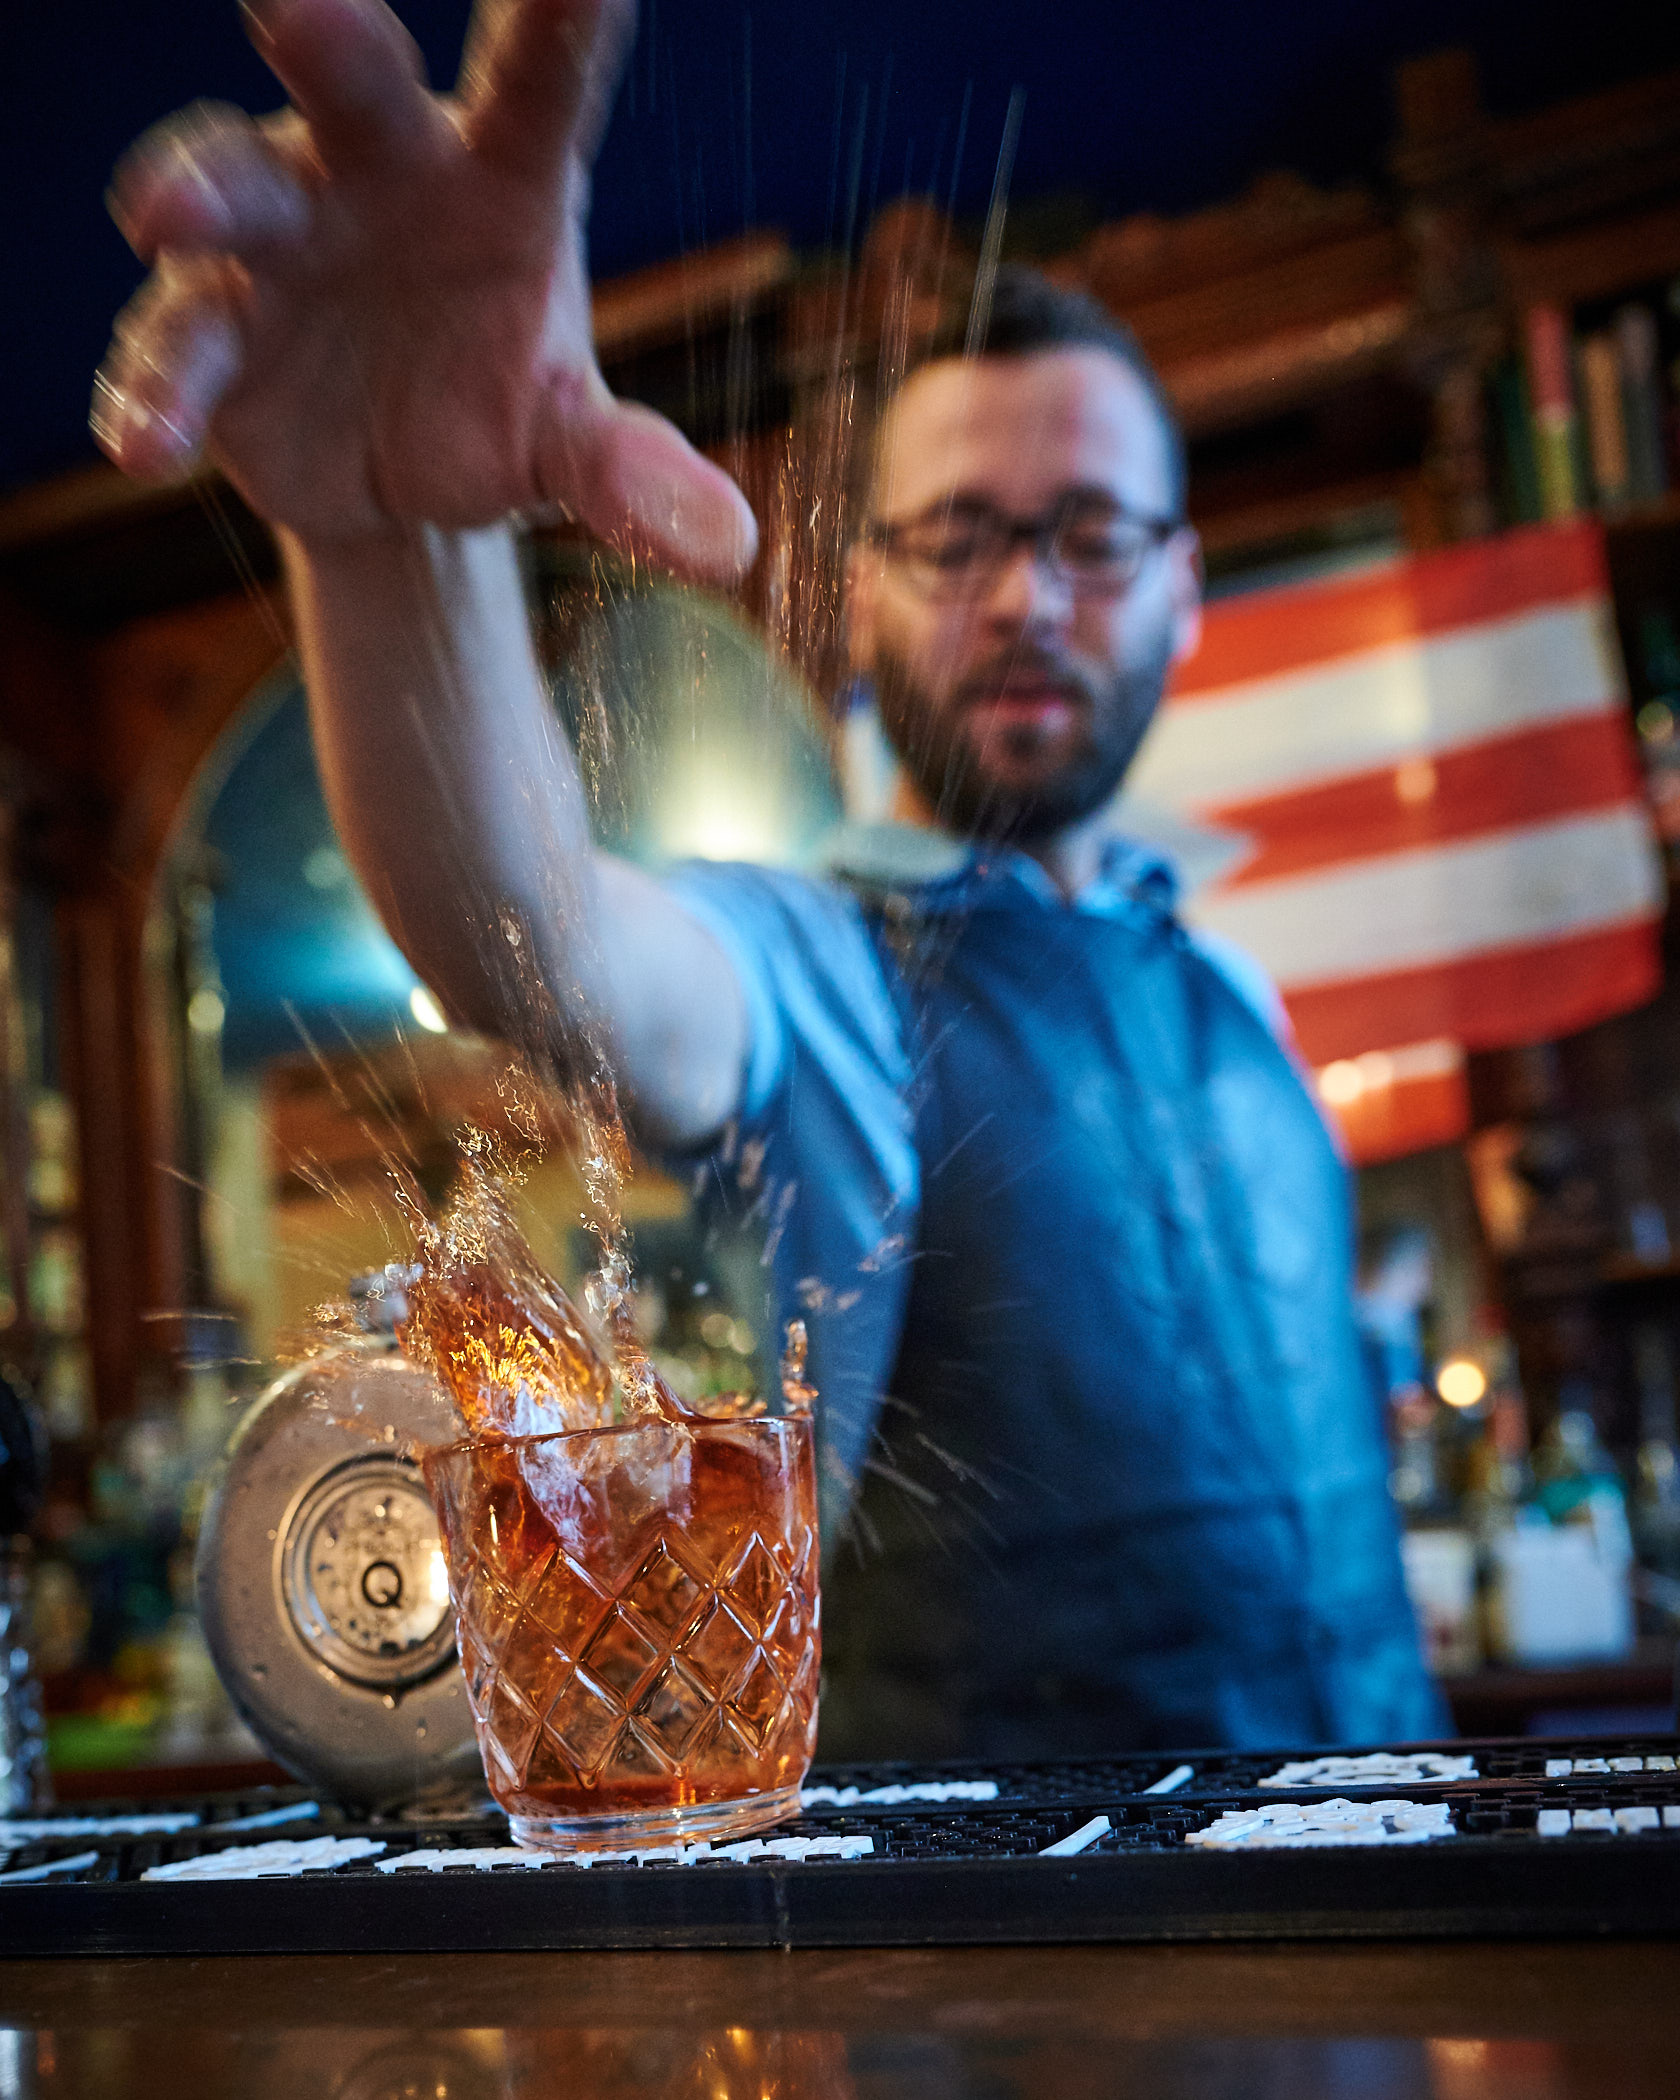 La Factoria Ice Cube Drop into Negroni